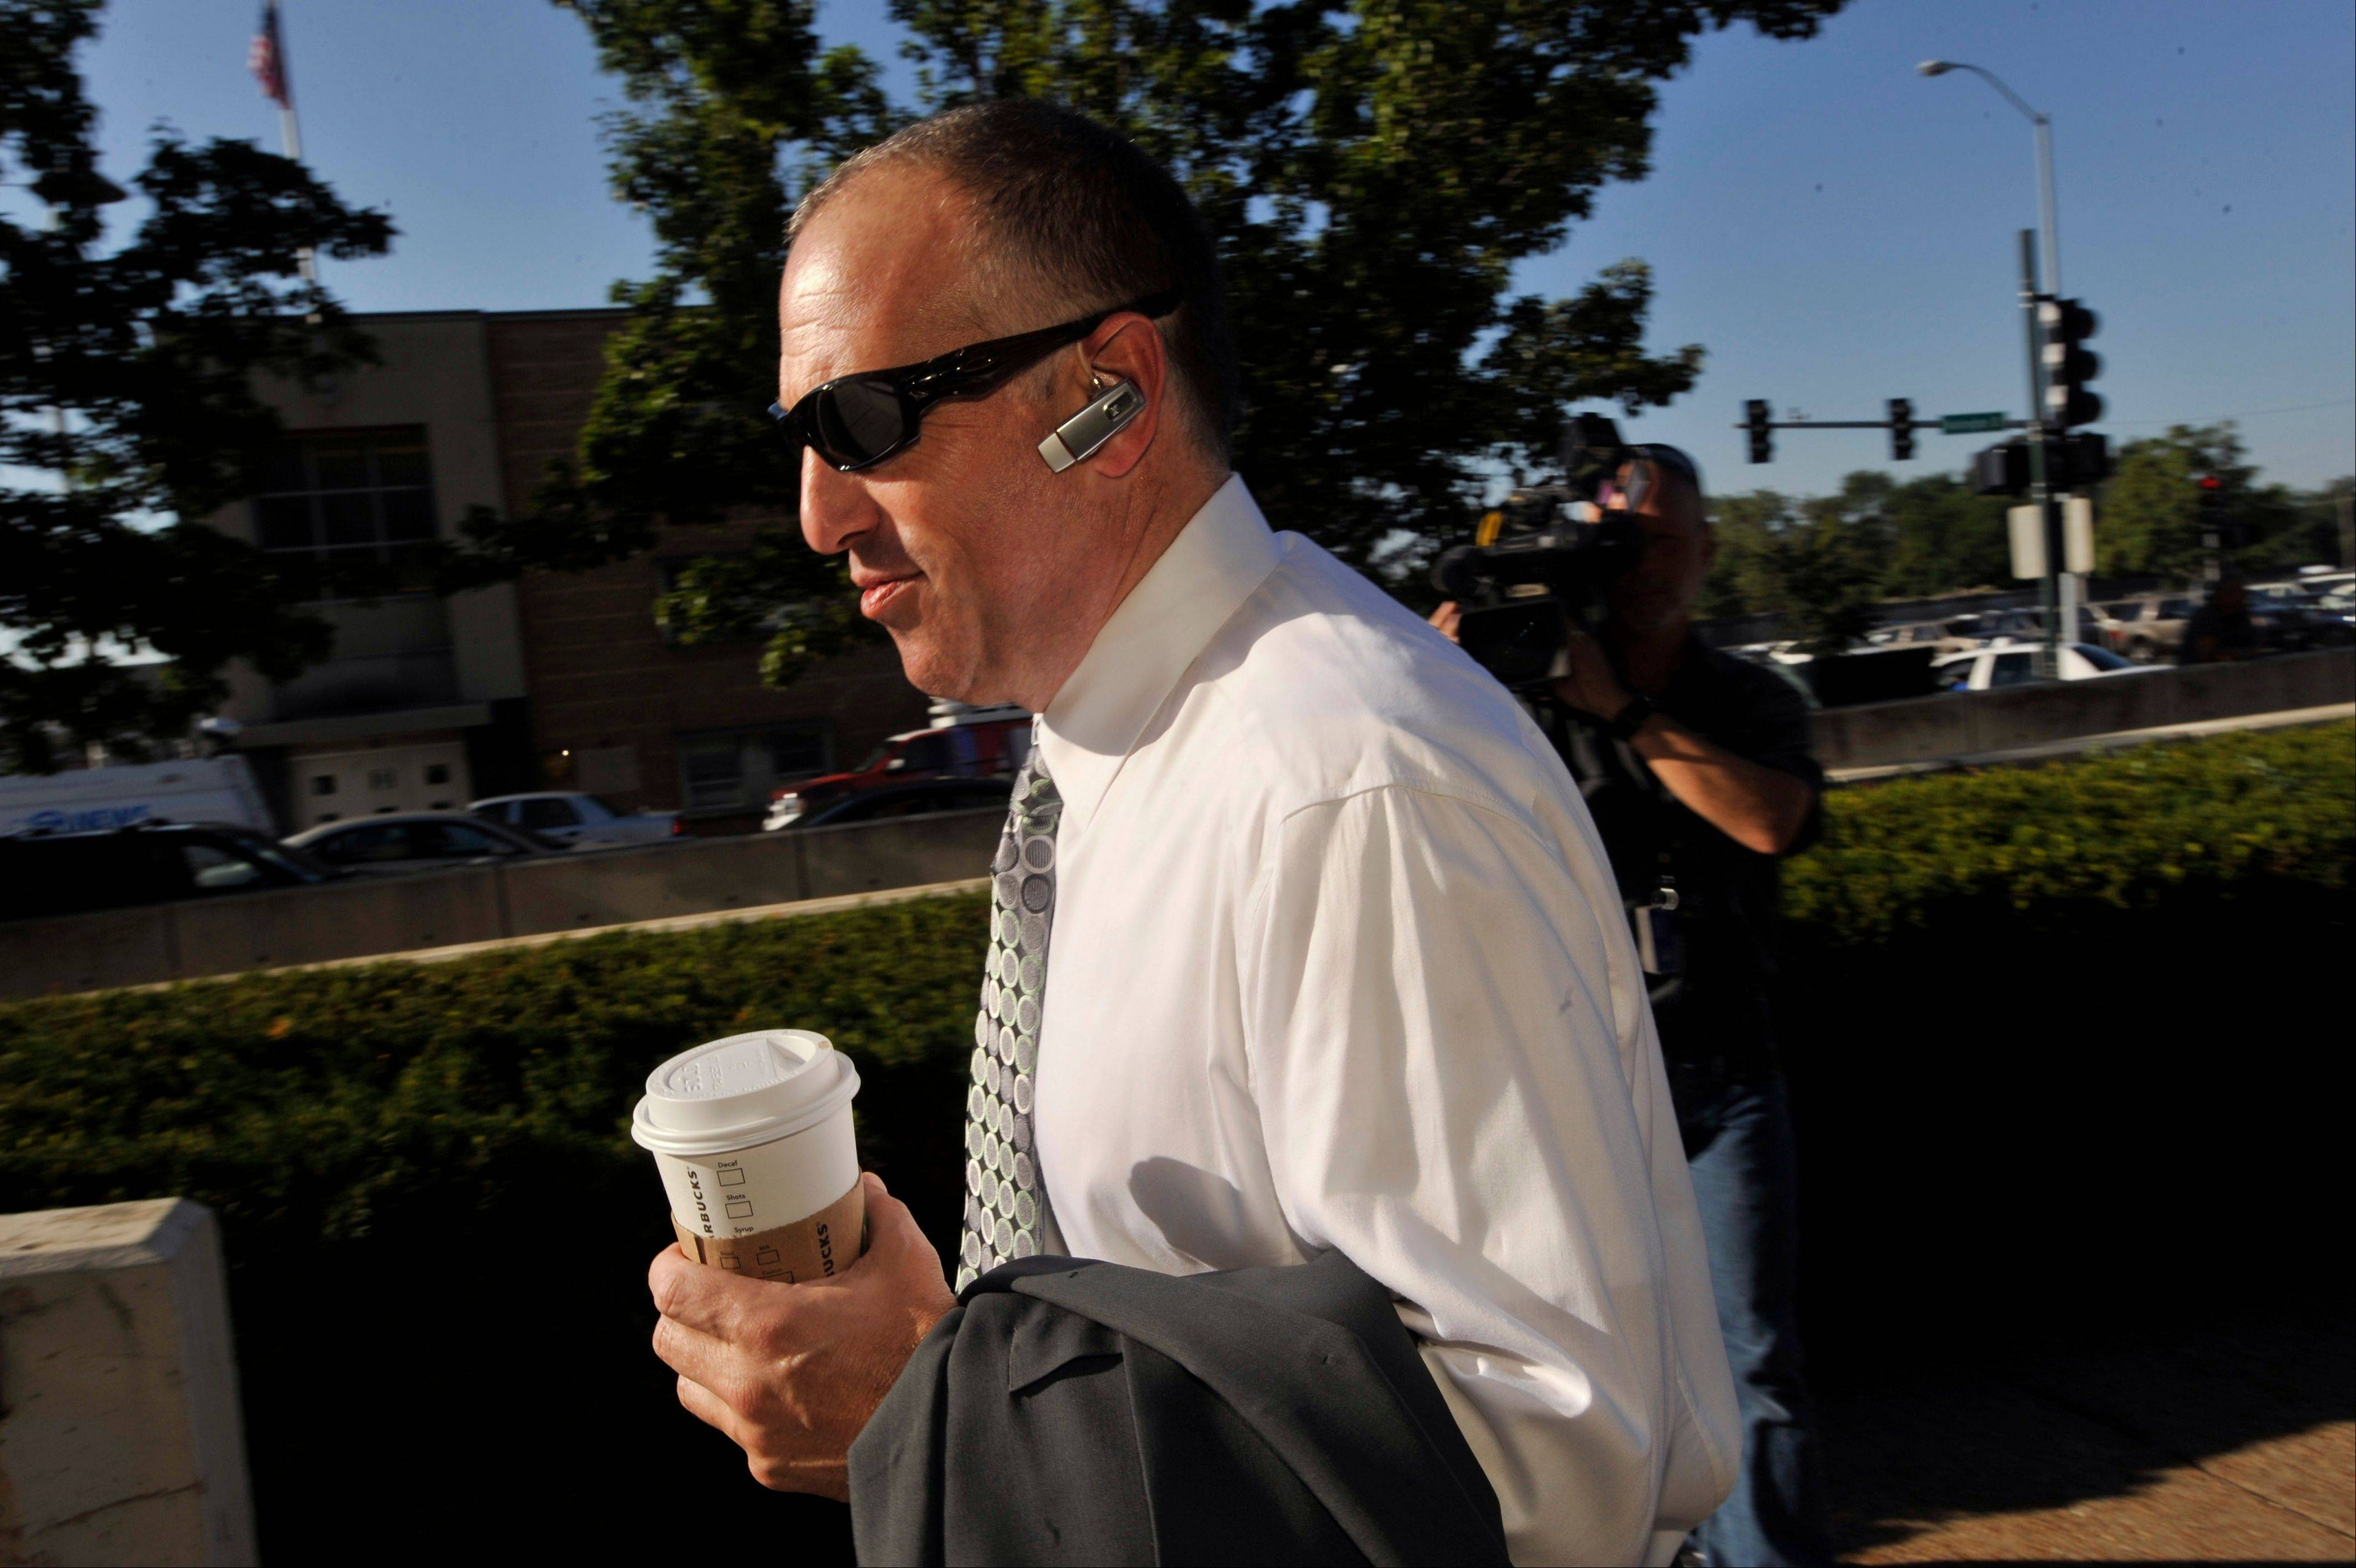 Attorney for Drew Peterson, Steven Greenberg, walks to the Will County Courthouse during the second day of jury deliberations in Peterson's murder trial, Thursday, Sept. 6, 2012, in Joliet, Ill.